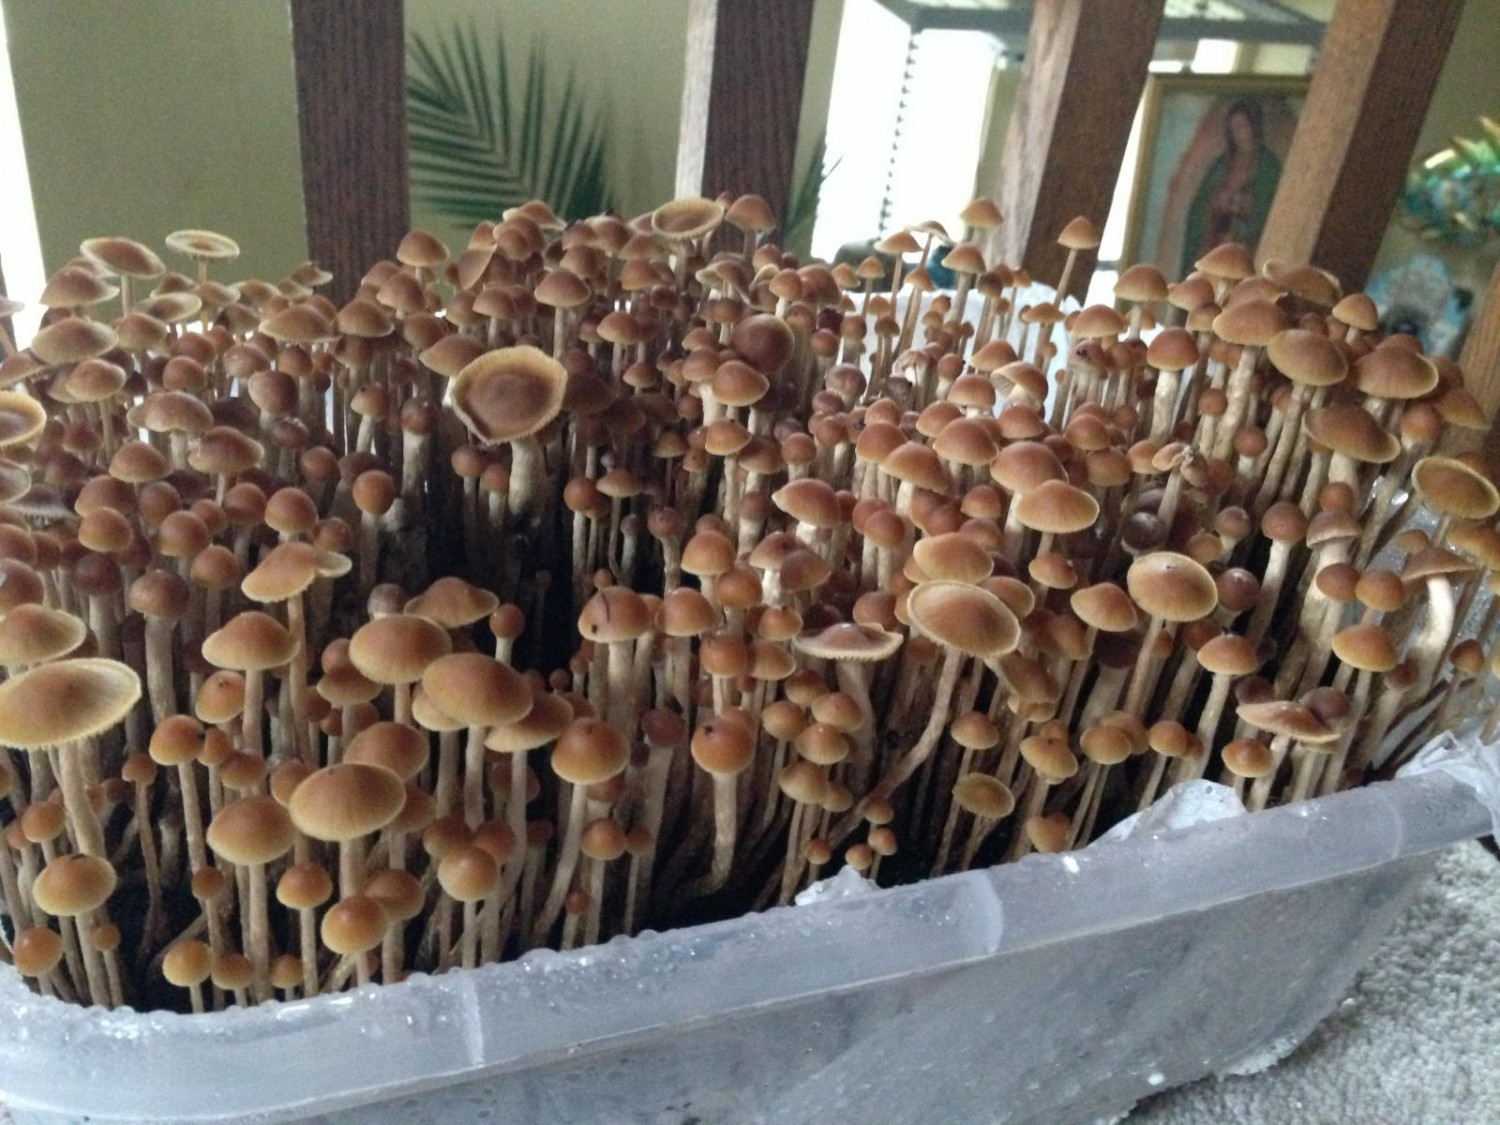 Best Place To Buy Magic Mushrooms Infographic